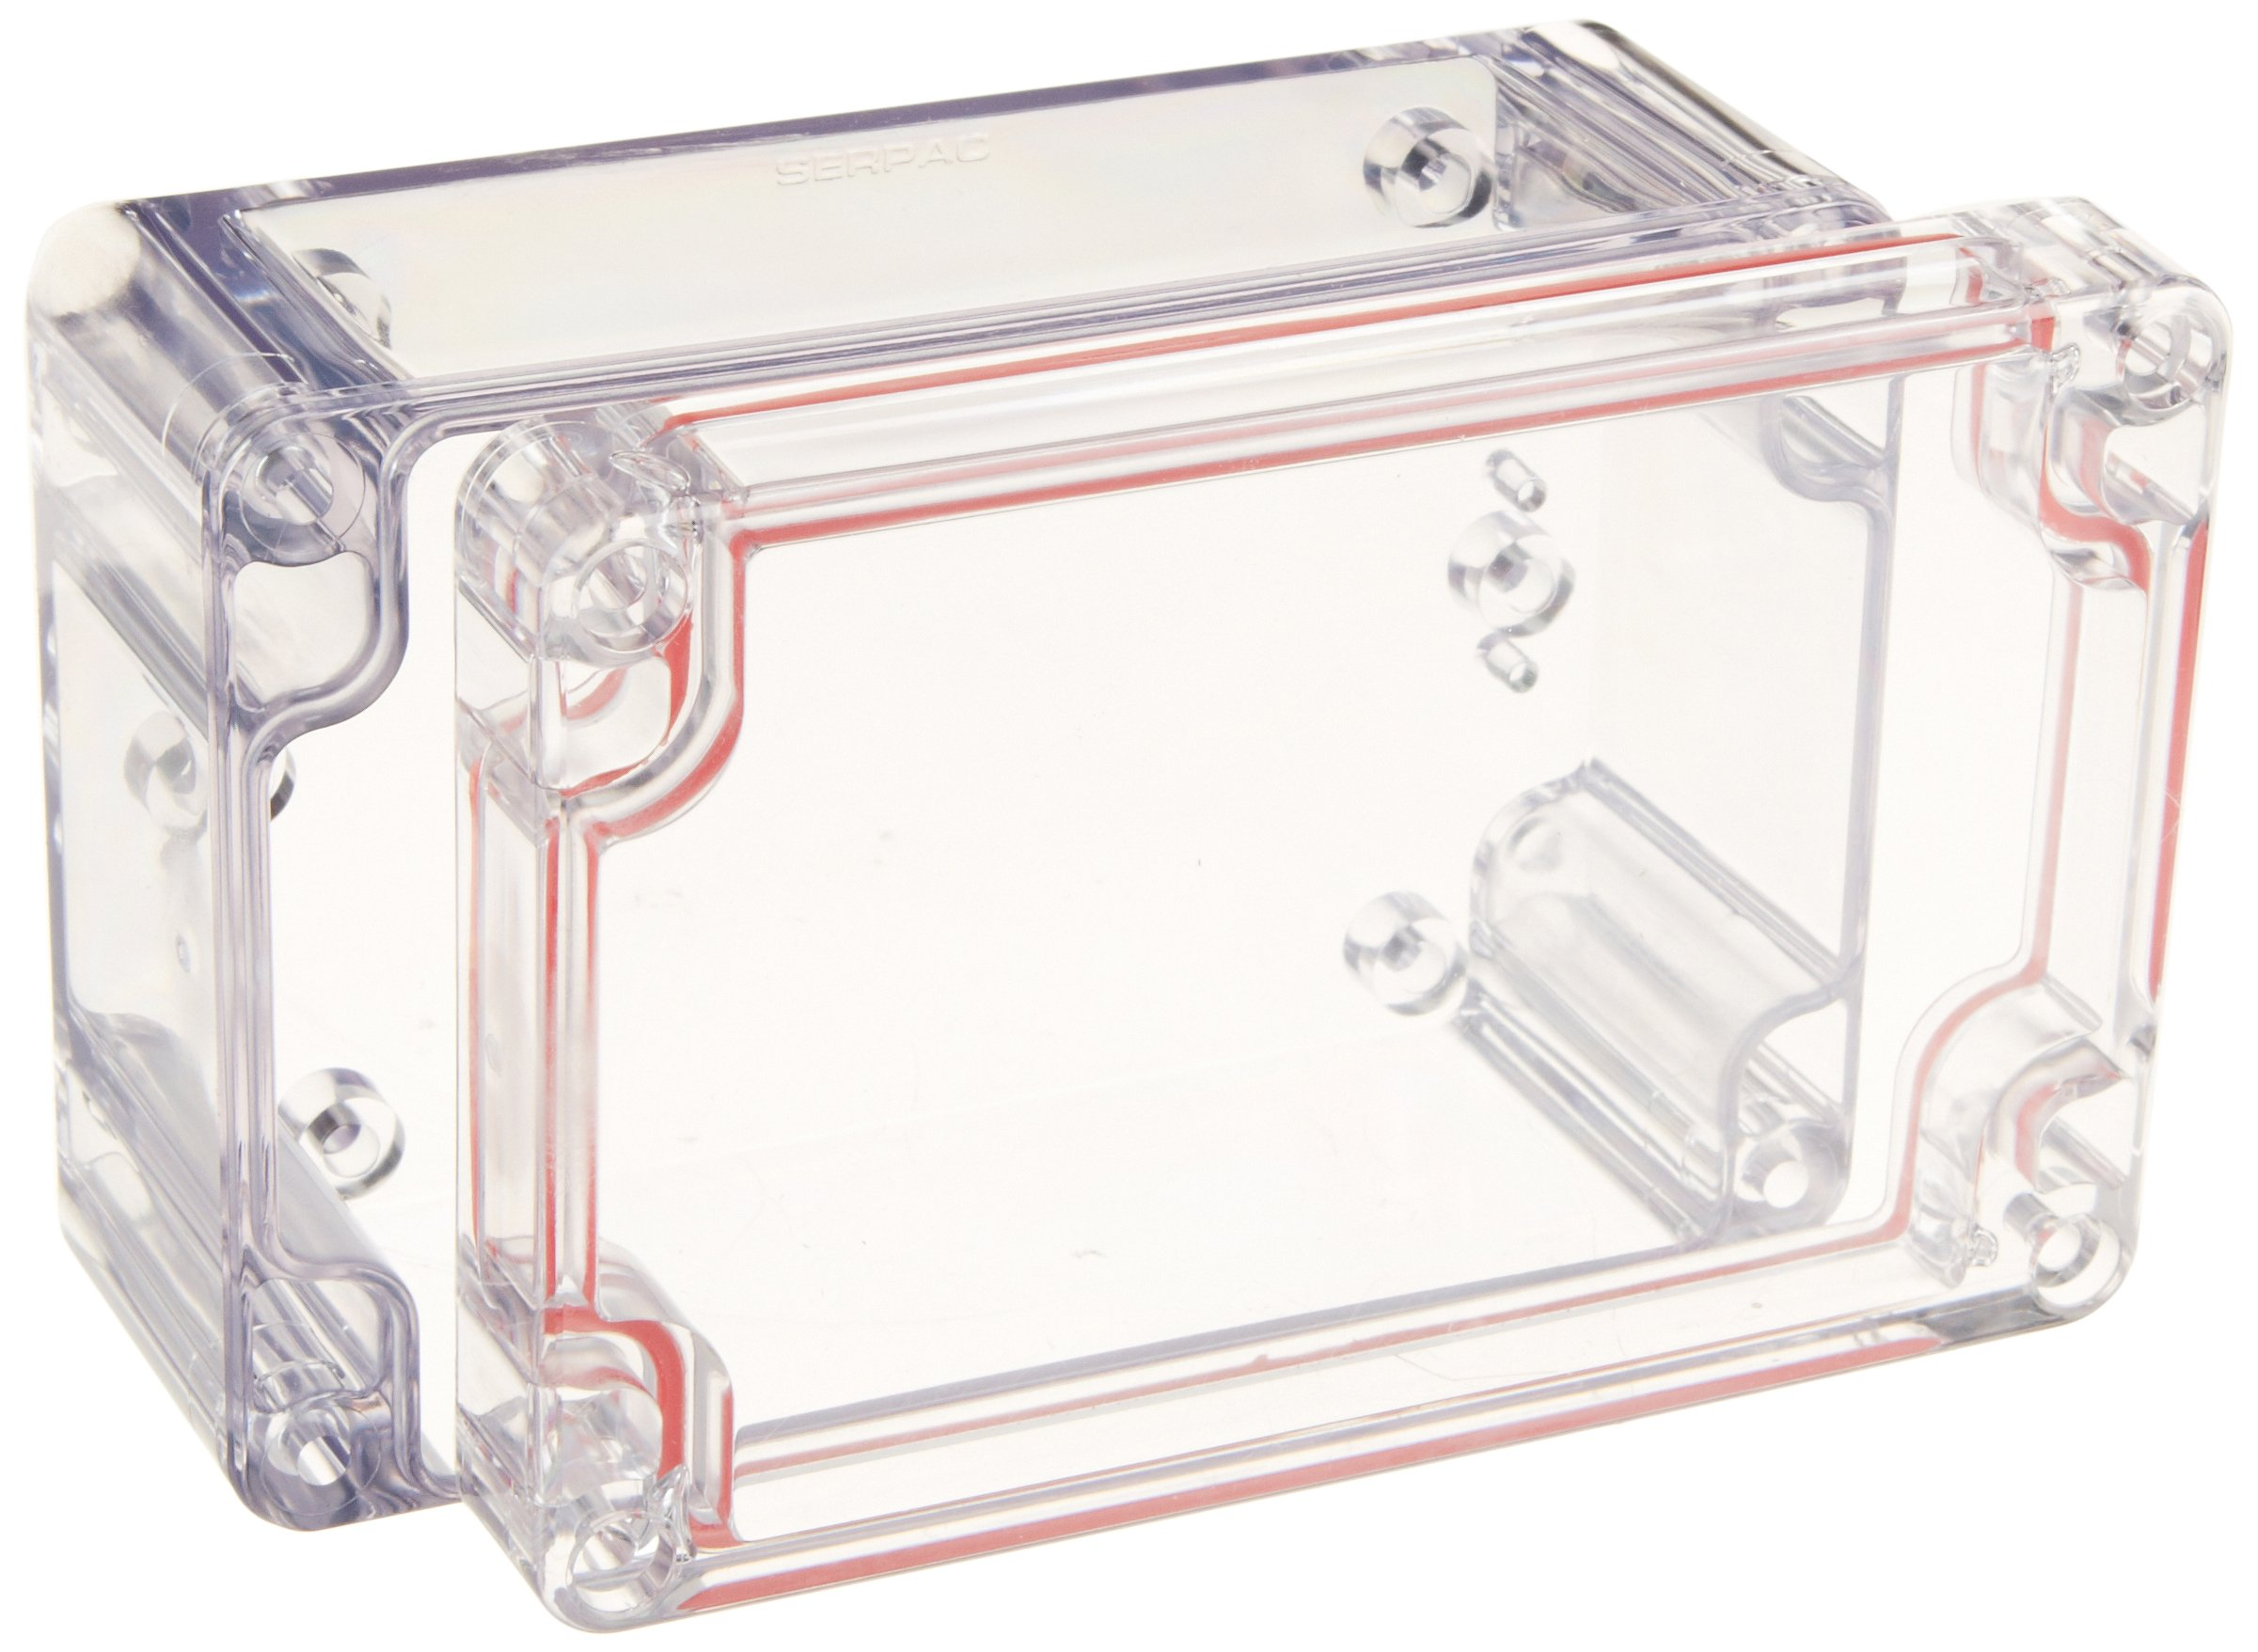 Serpac RB53-1TC1BC Polycarbonate Plastic Enclosure, 4.72'' Length x 3-5/32'' Width x 2-11/64'' Height, Clear Top/Bottom